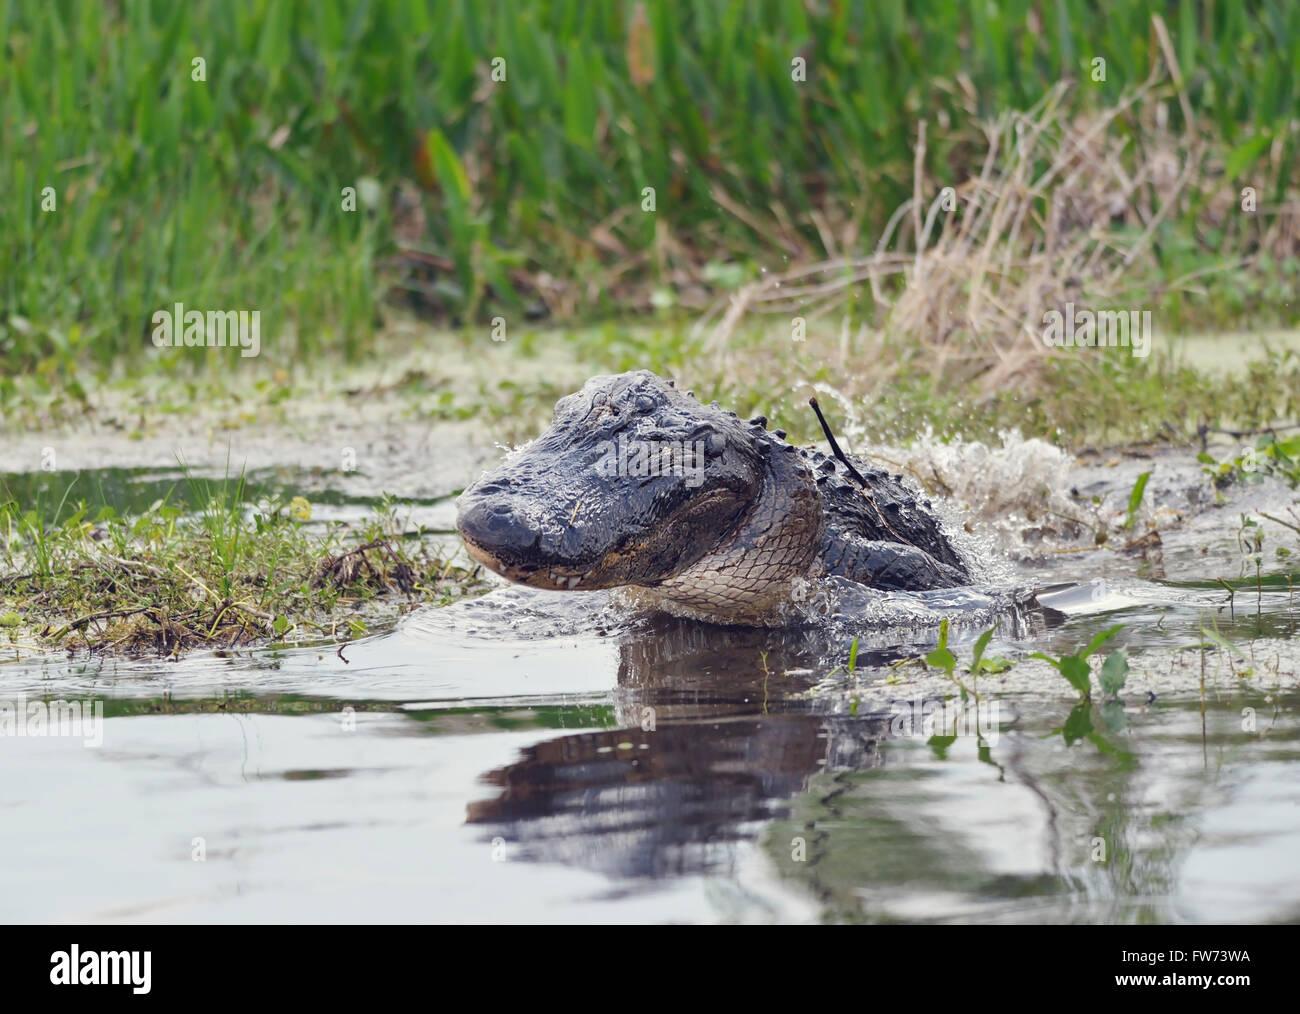 Wild Florida Alligator Jumps out of  Water - Stock Image